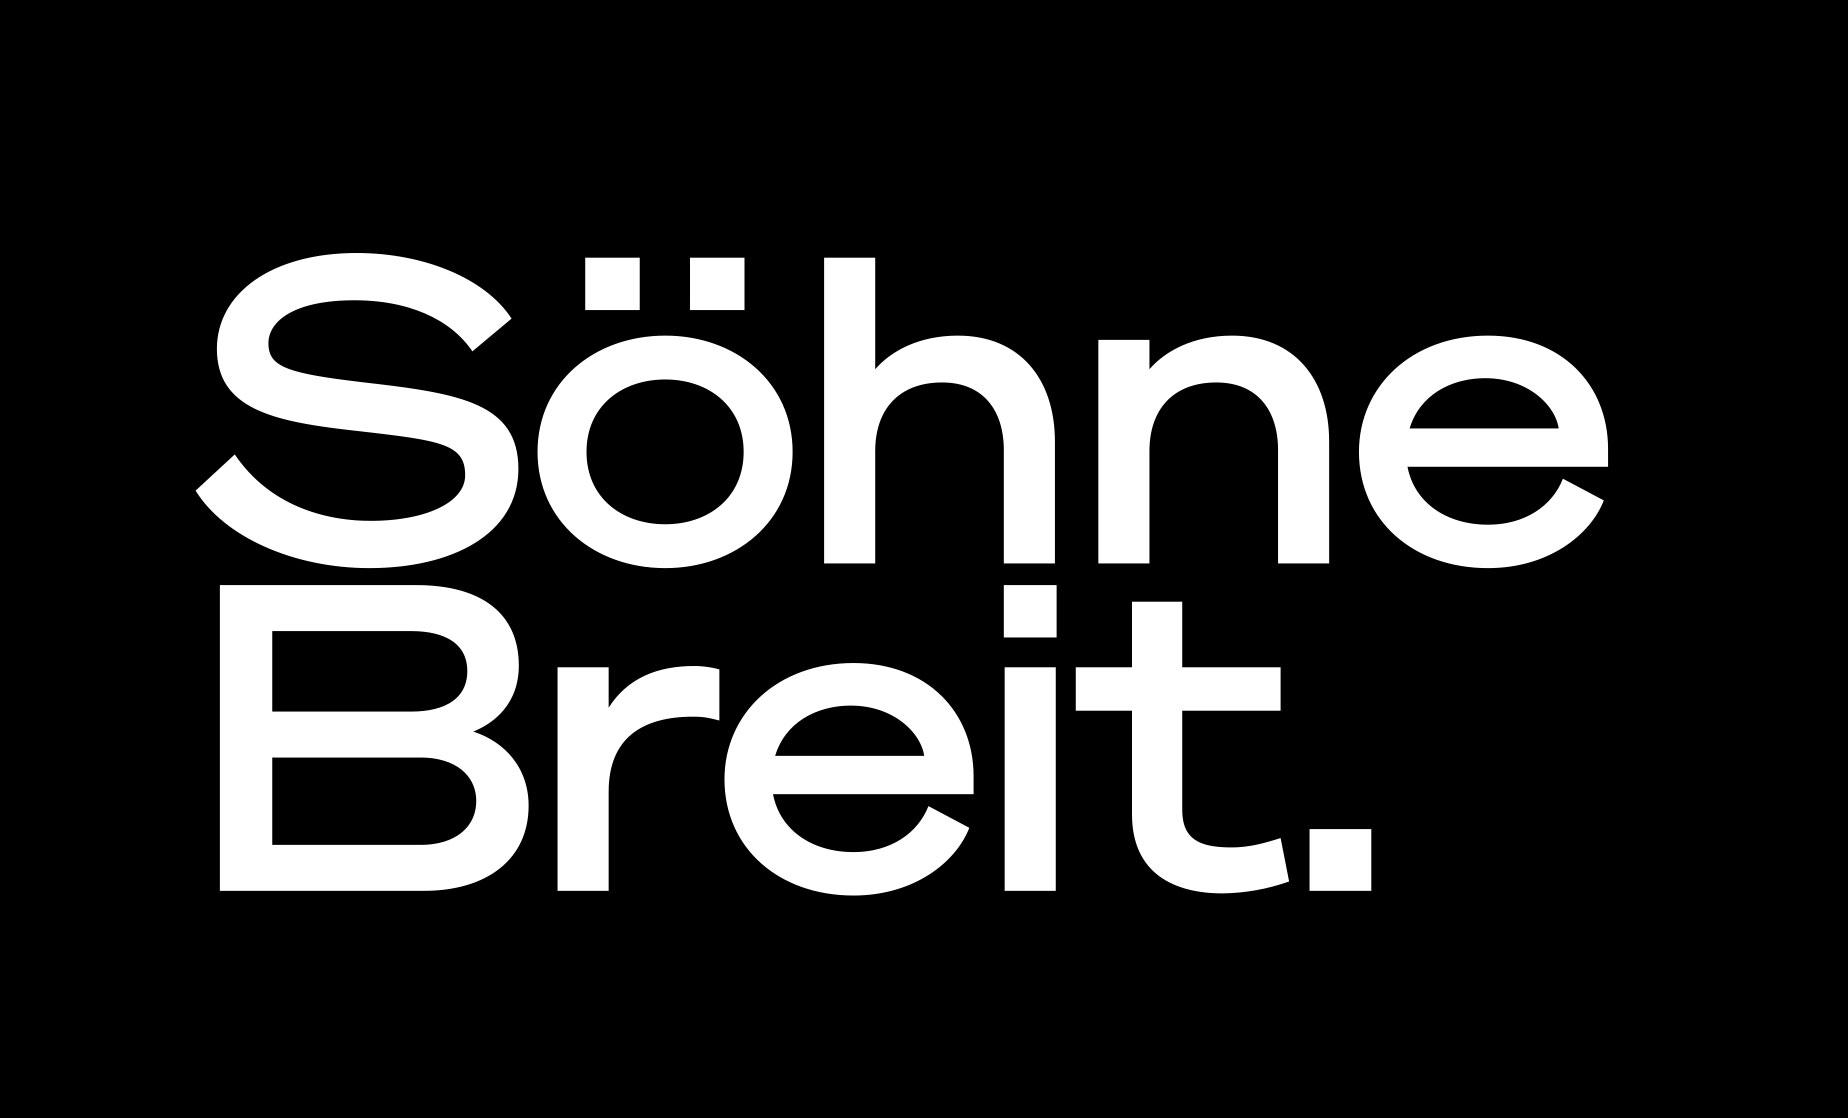 Söhne Collection by Klim Type Foundry